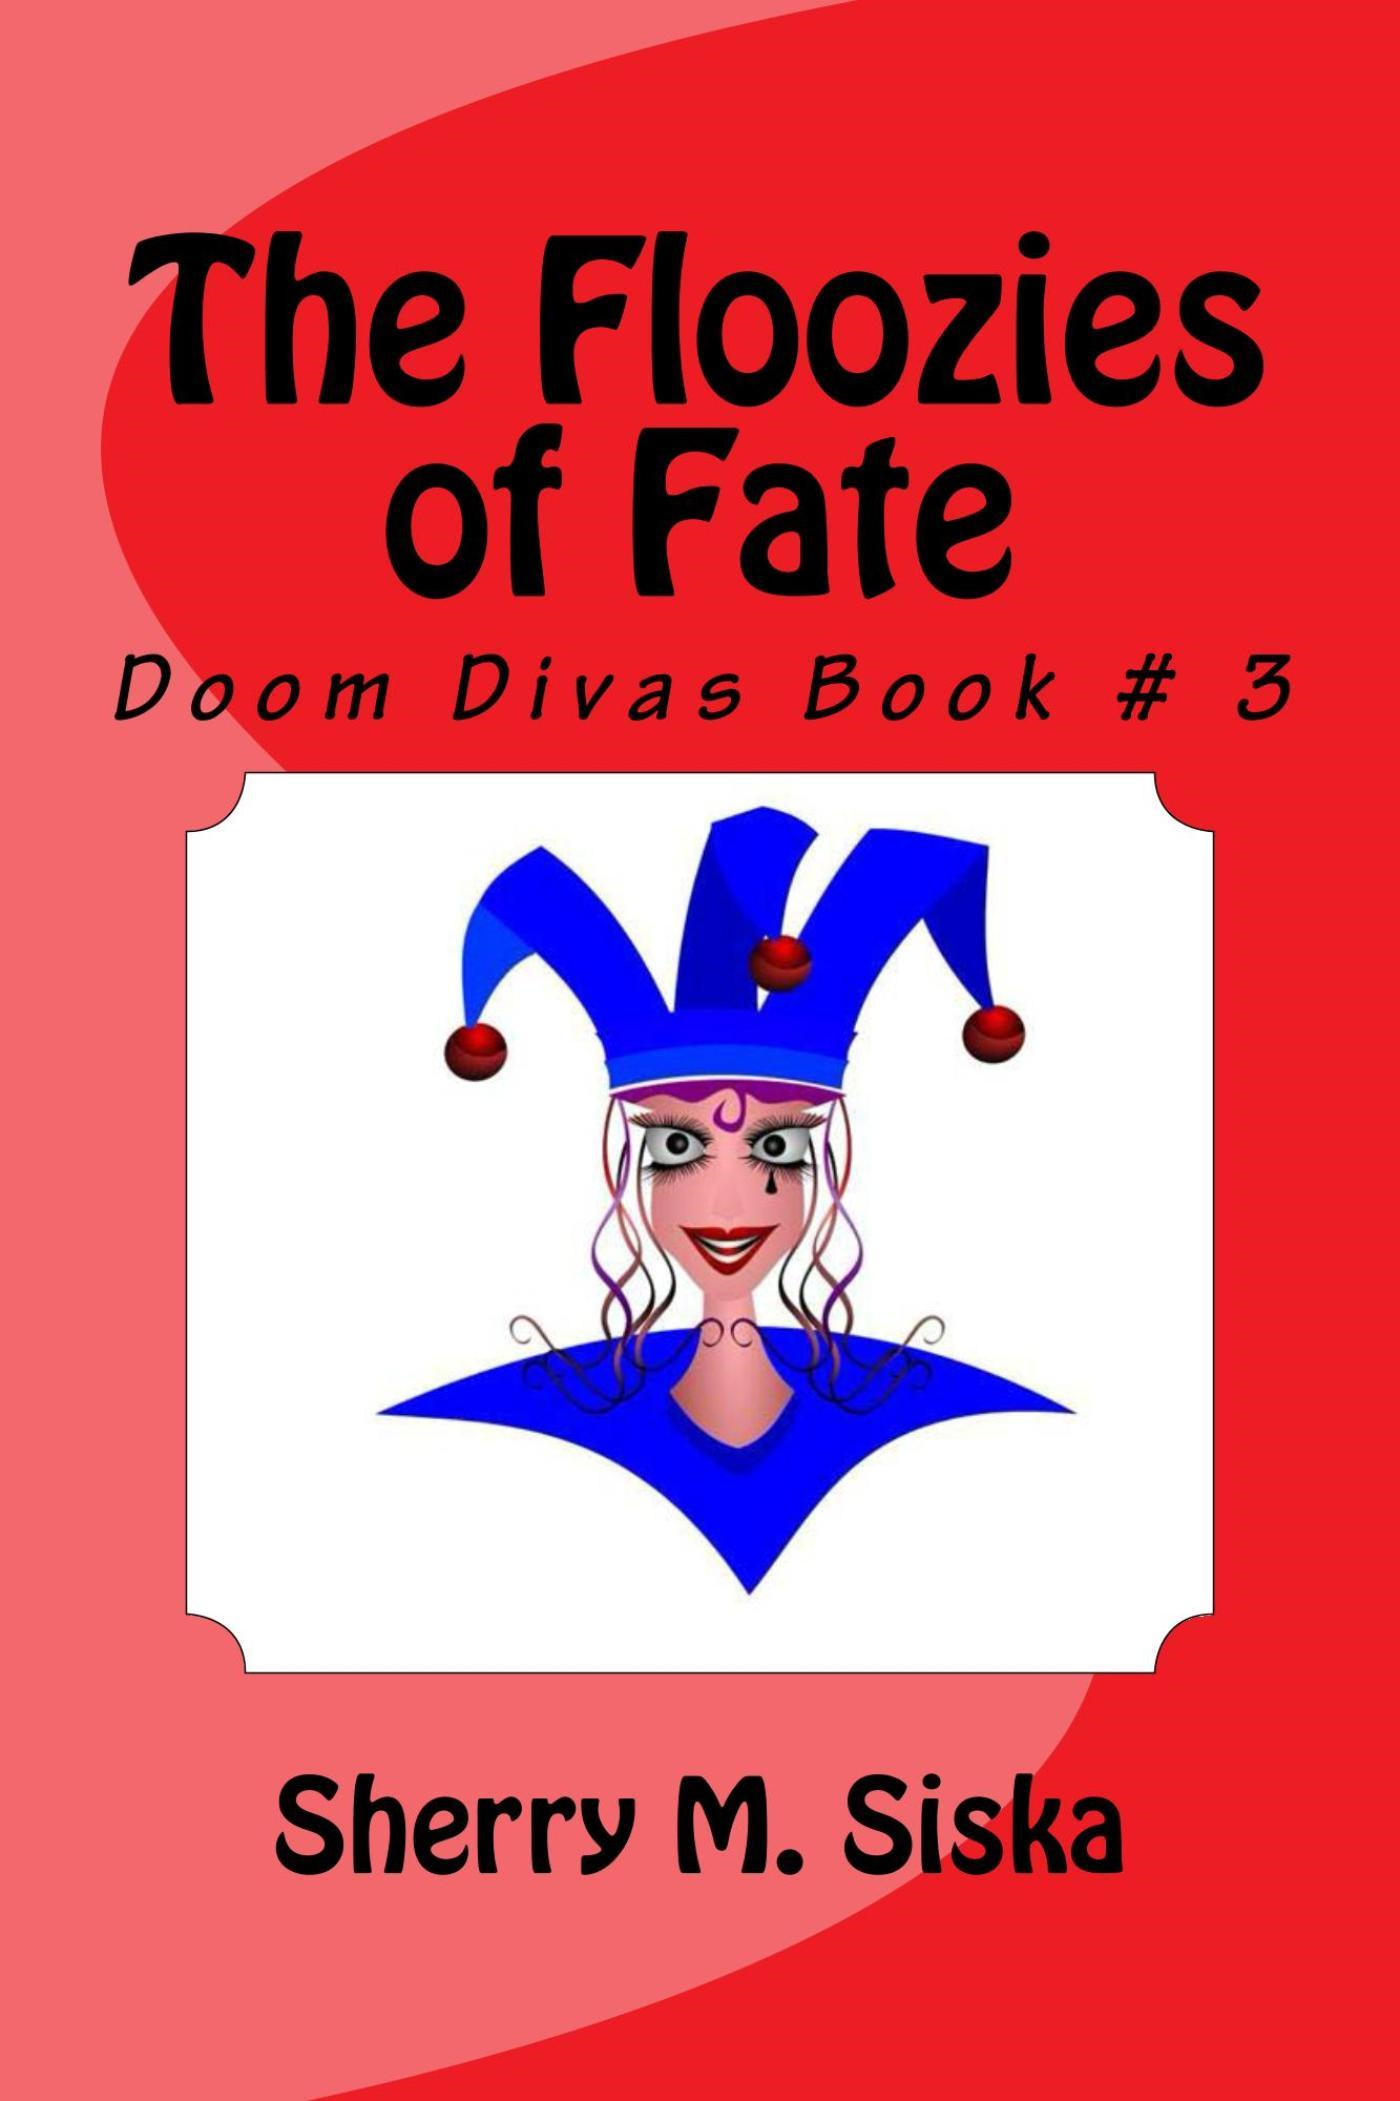 The Floozies of Fate: Doom Divas Book #3